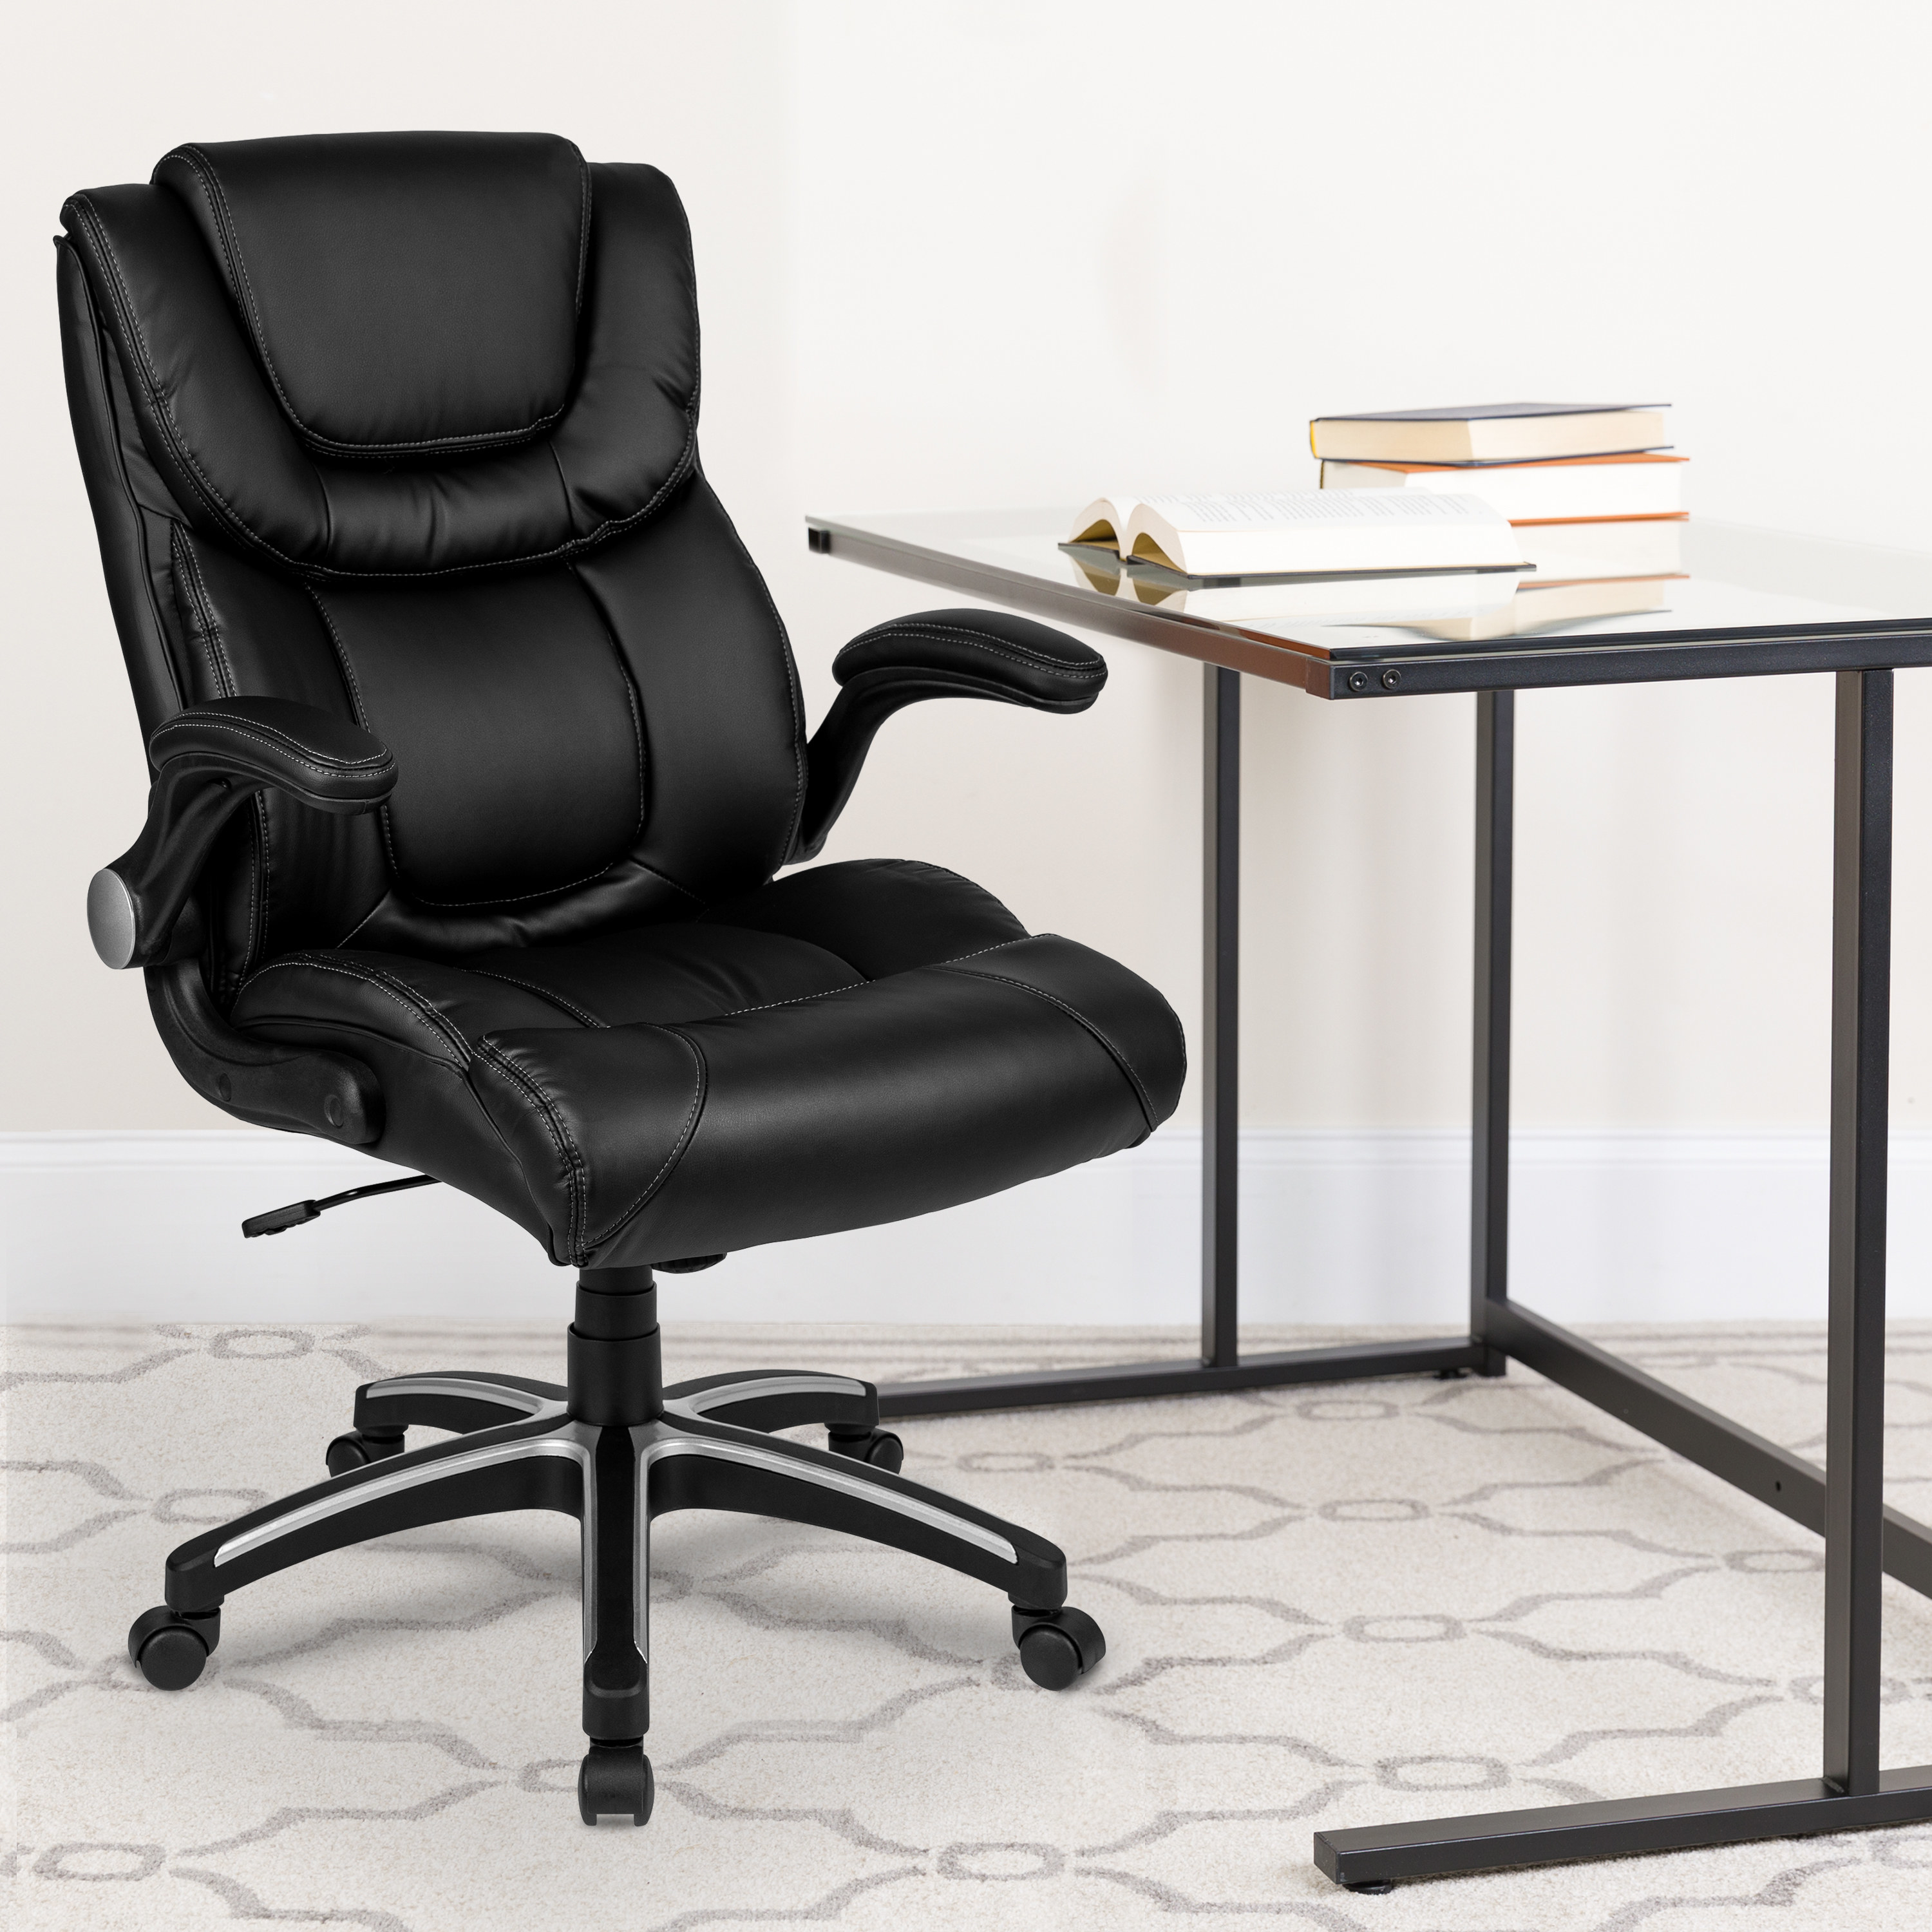 black swivel office chair sitting in front of a desk